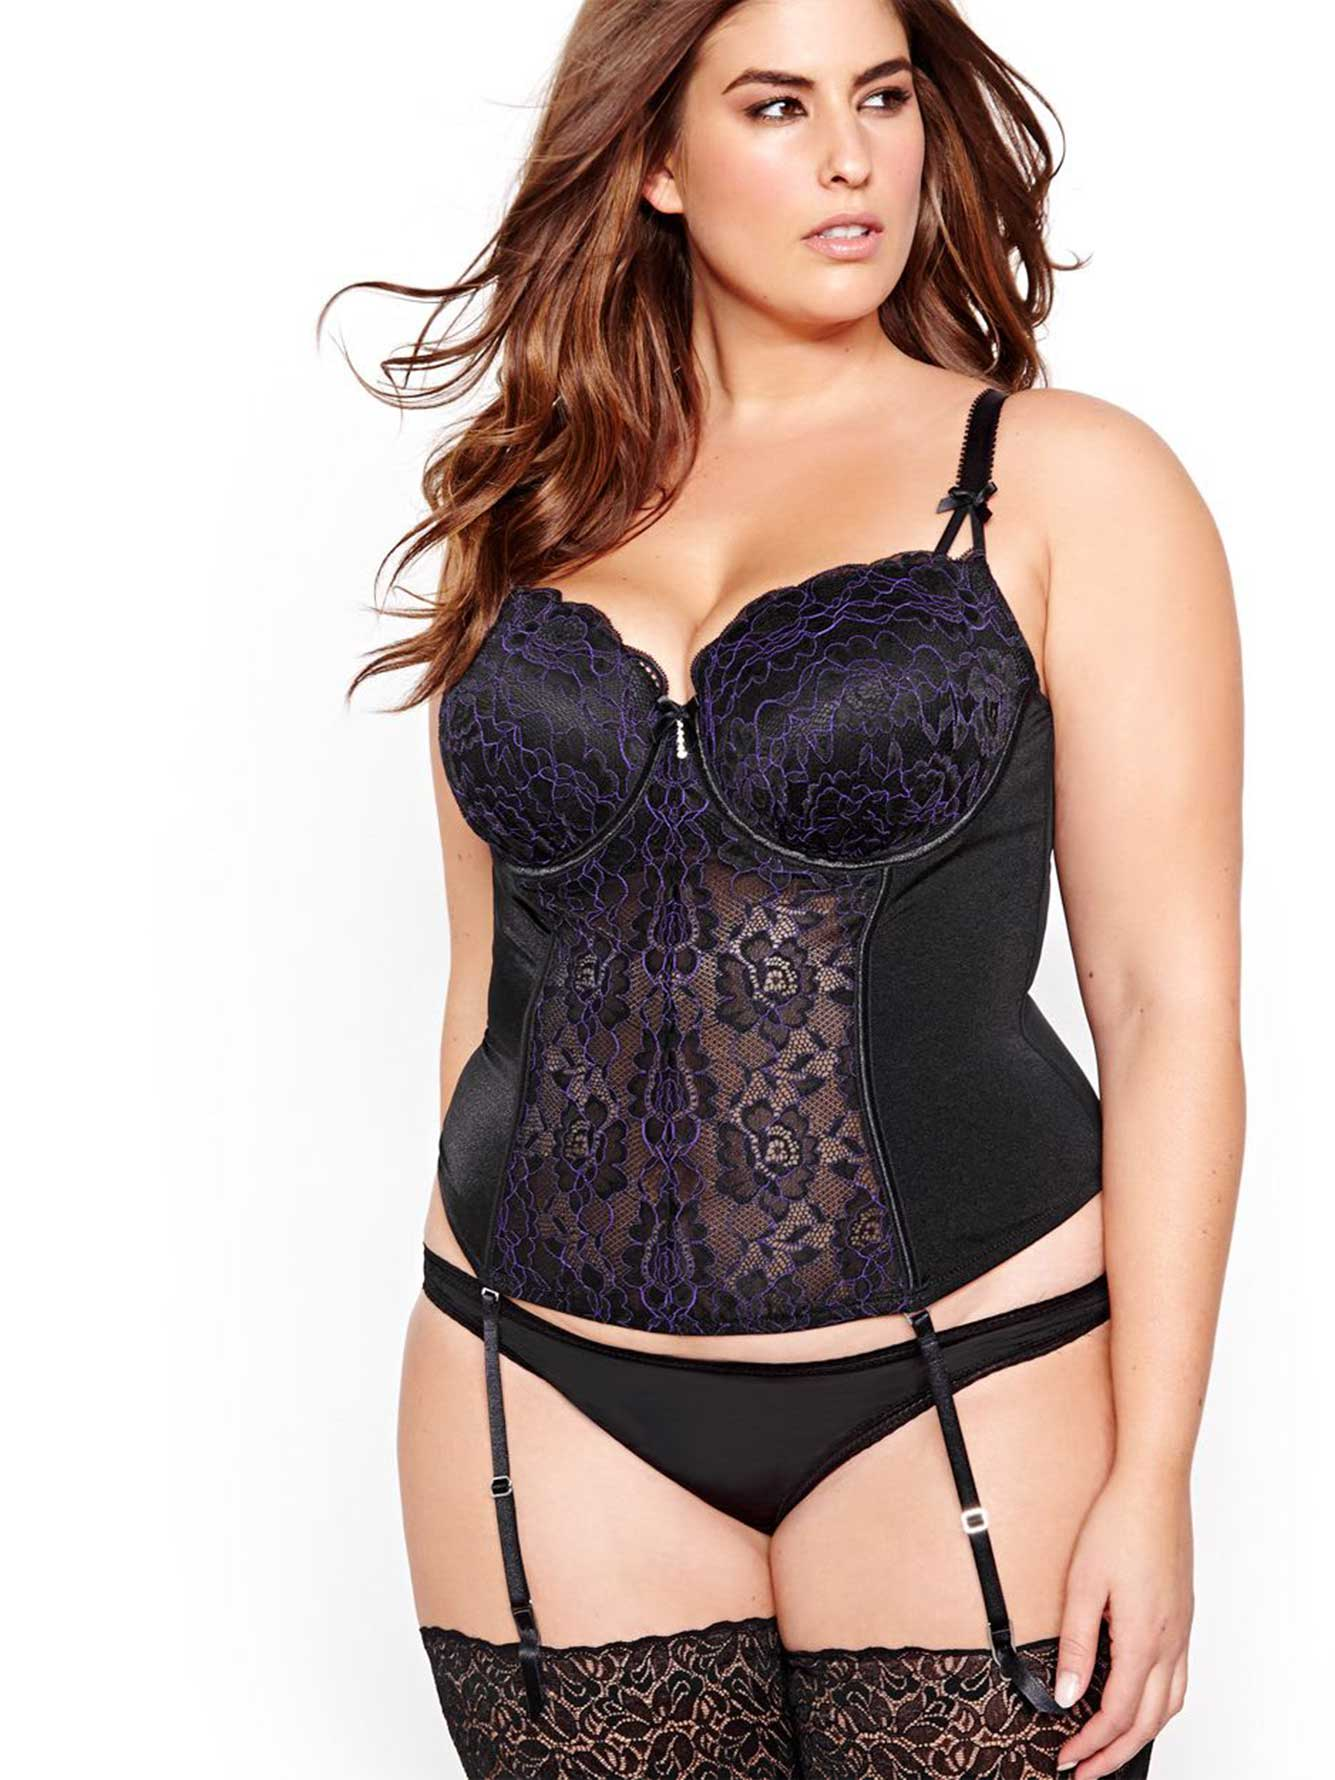 Bustier. Whether you're looking for strapless support, slimming shapewear or a bit of both, there's bound to be a bustier that's just right for you. With innovative designs that utilize seamless construction and push-up padding for maximum comfort, you're sure to find a design that suits your lingerie needs. Seamless Shape.